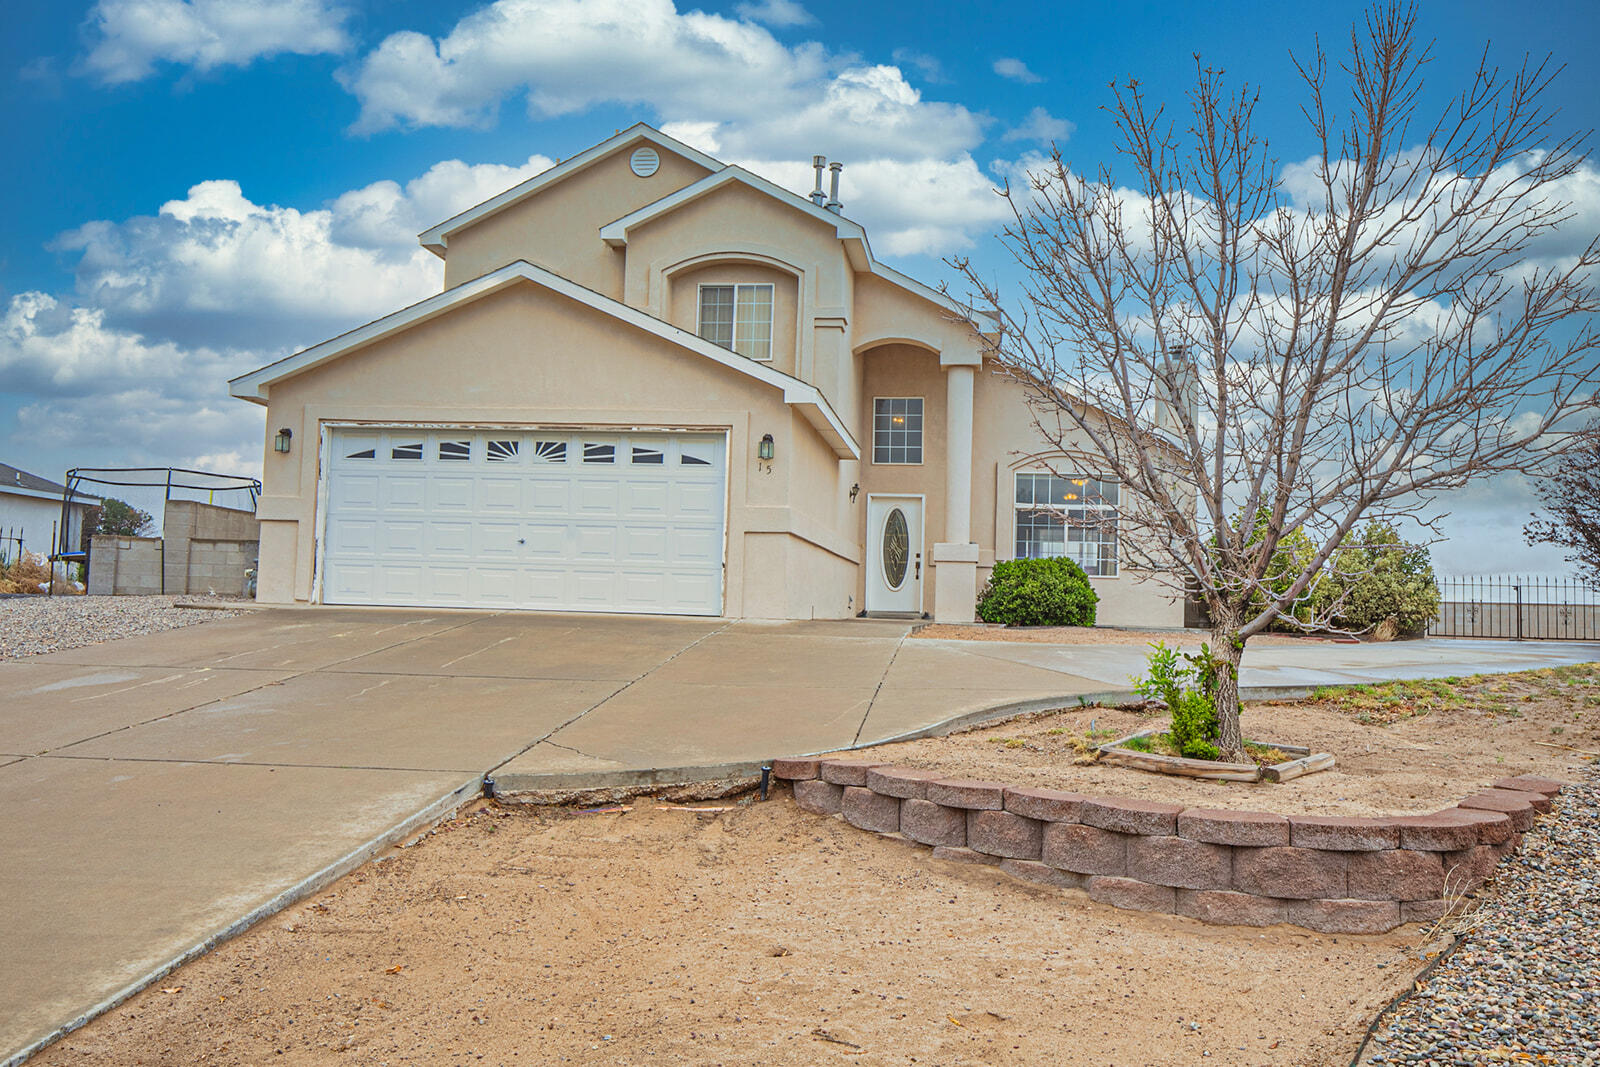 Don't miss out on this beautiful home with gorgeous views overlooking the entire valley of Valencia County.  With its oversized lot, and spacious floor plan it will make the buyers a very happy home.  Call today to schedule your appointment!